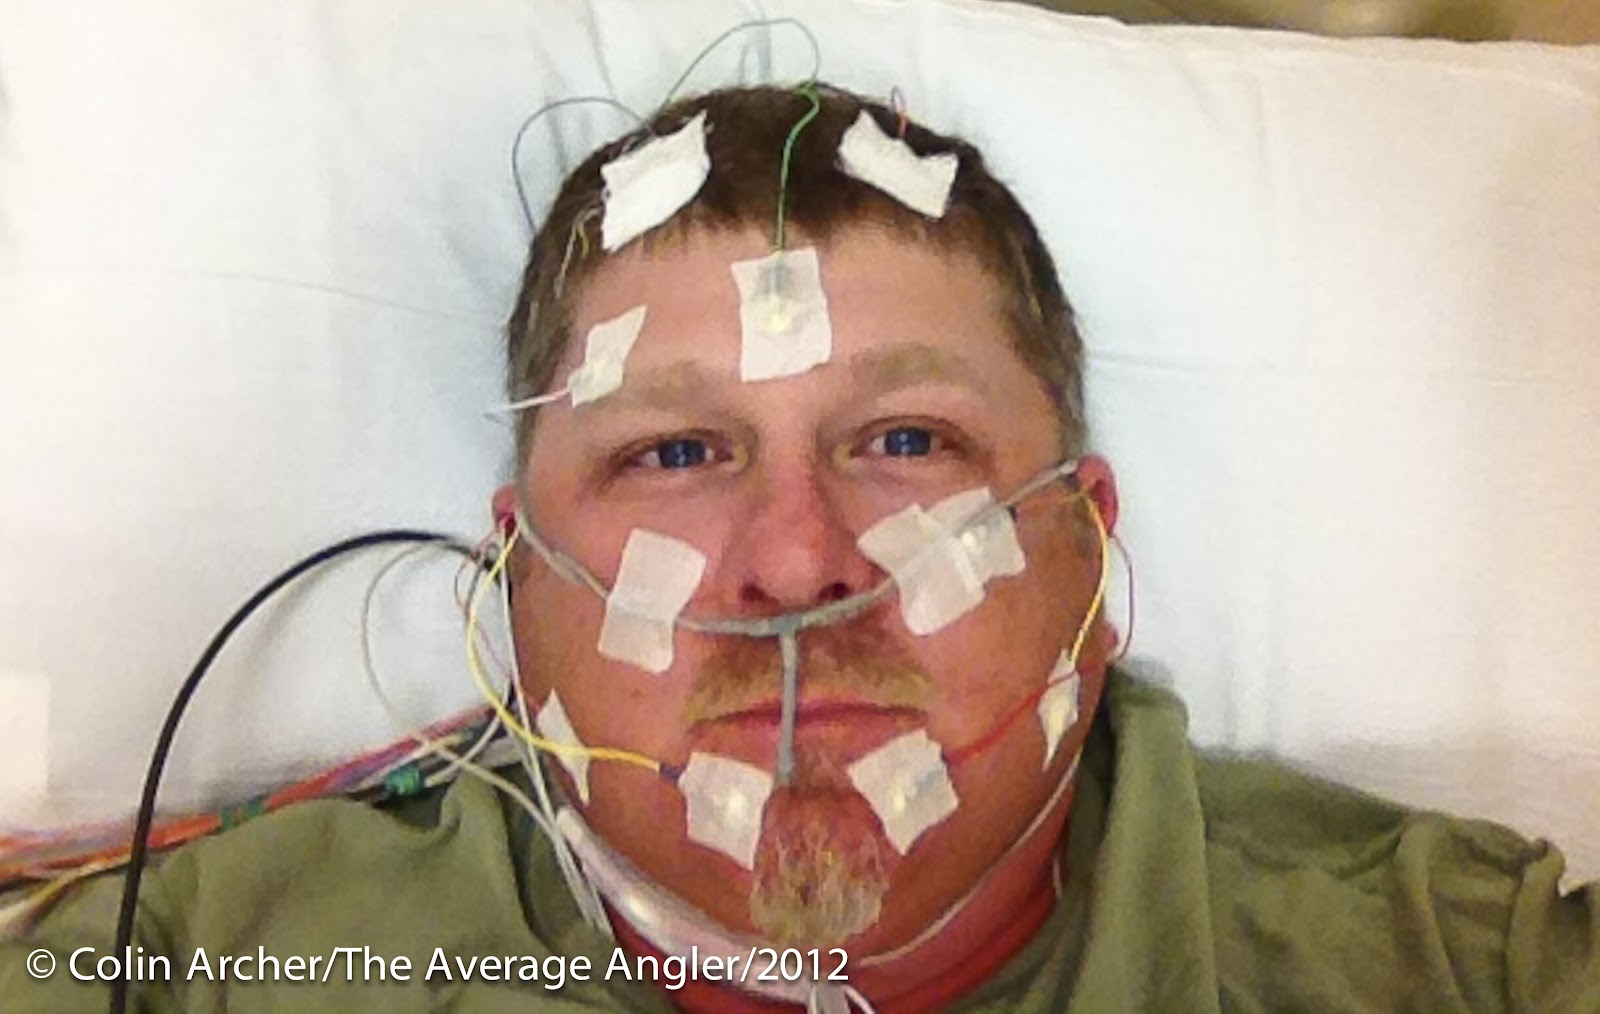 Sleep study hook up pictures